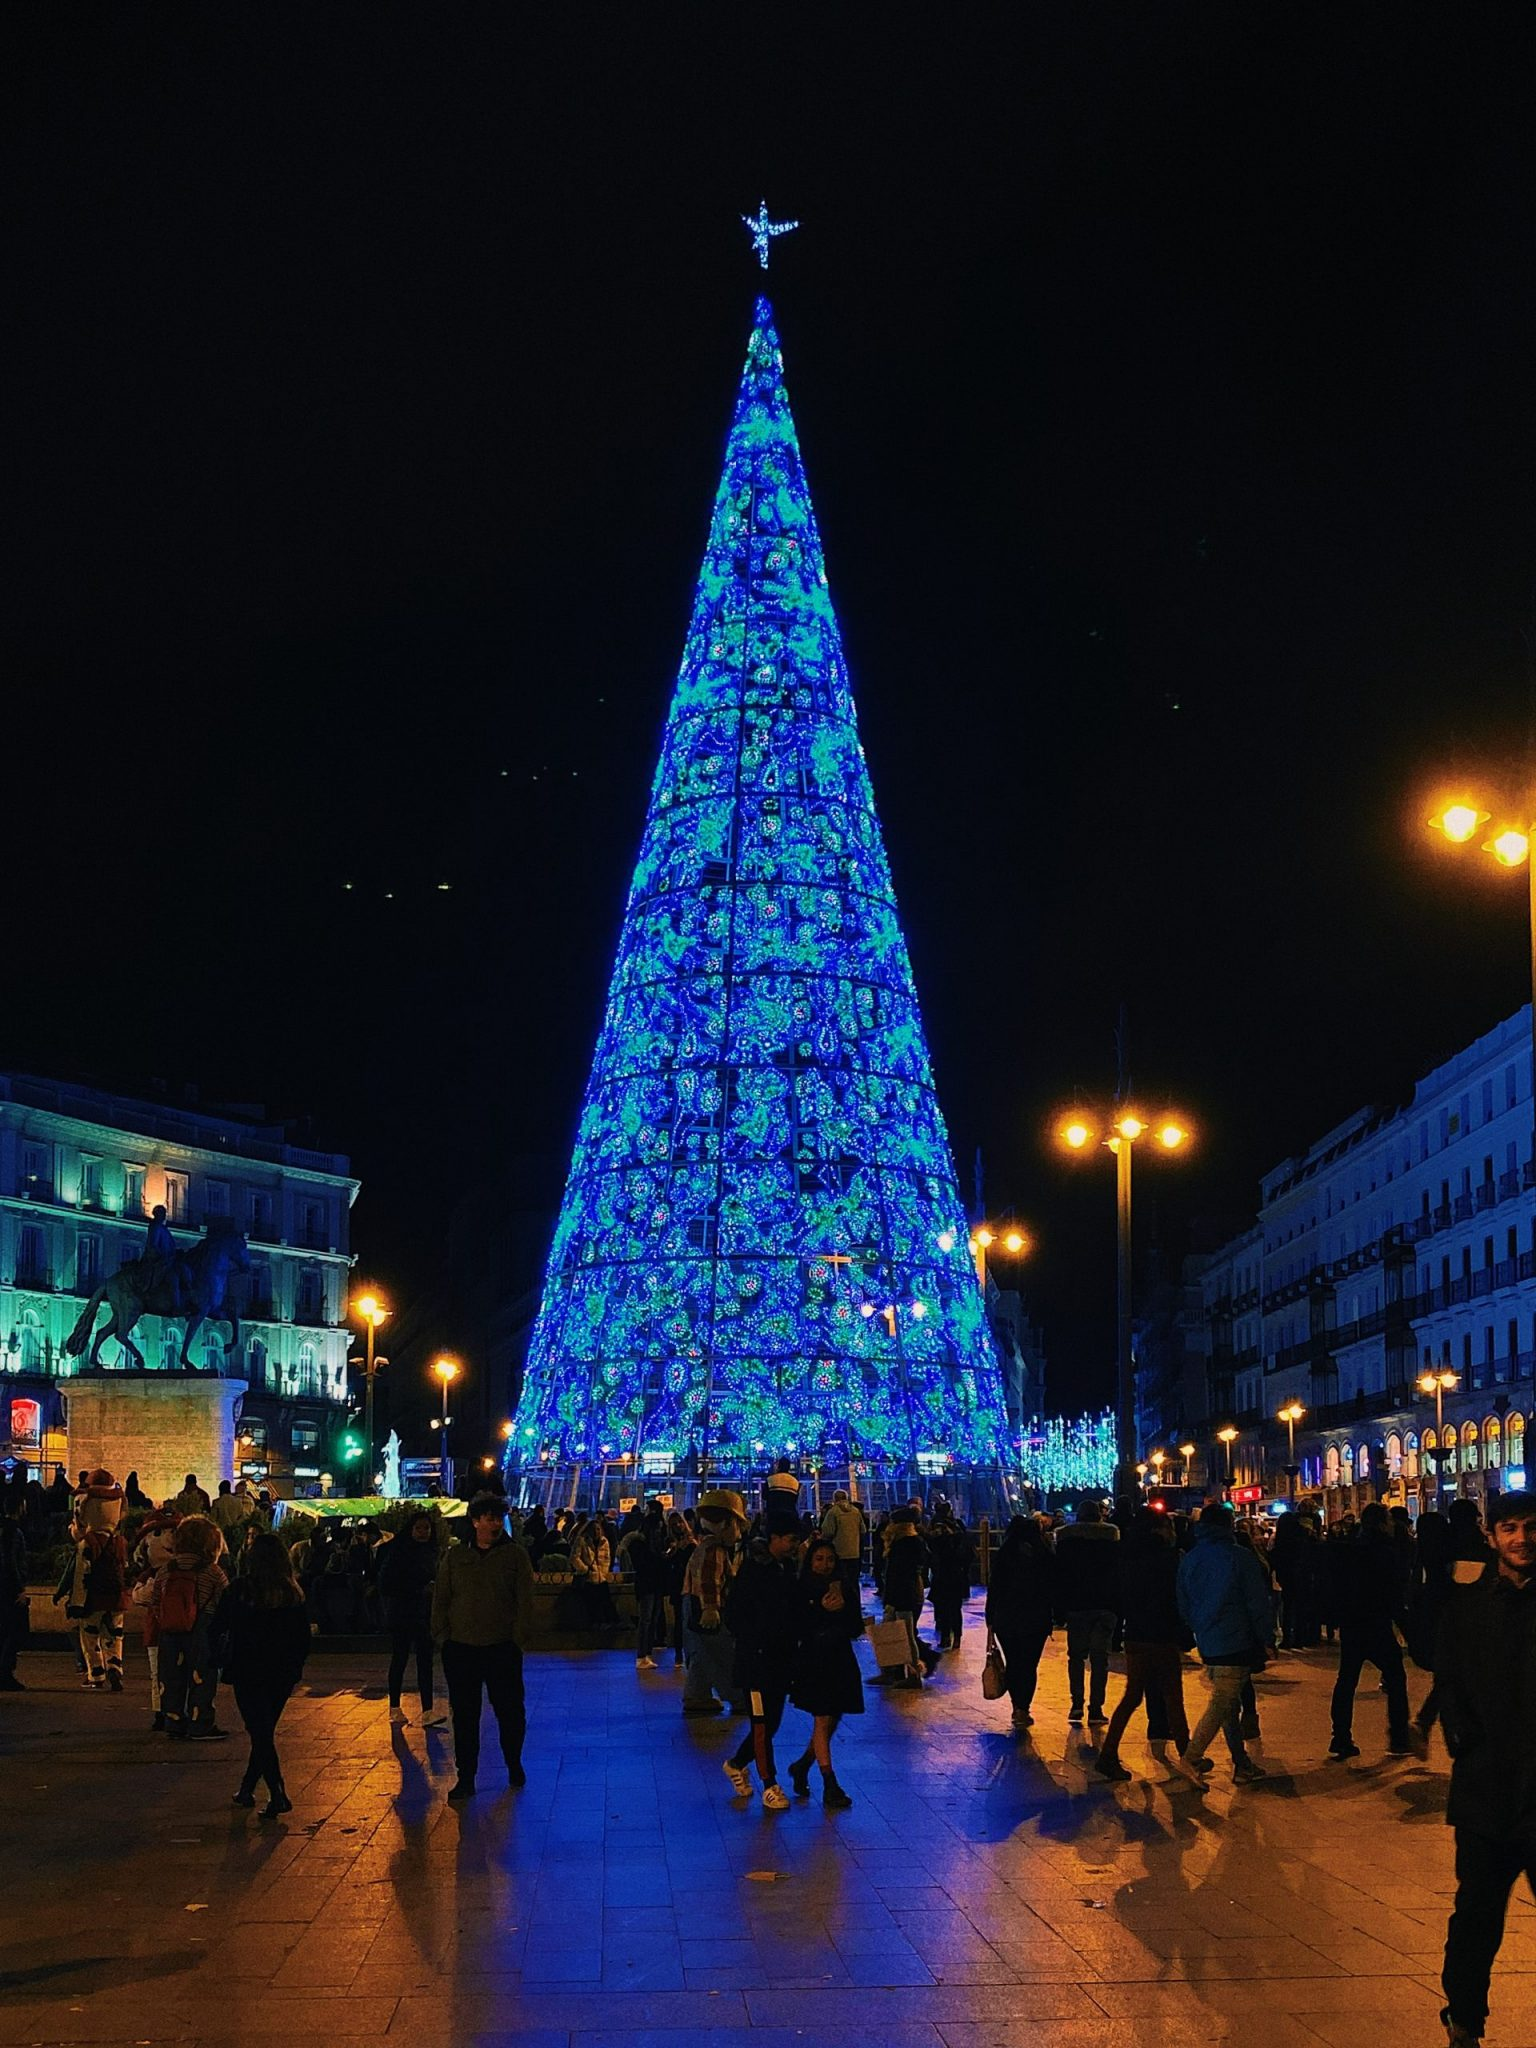 The Christmas Tree at Puerta del Sol, in Madrid Spain, a beautiful part of celebrating holidays abroad